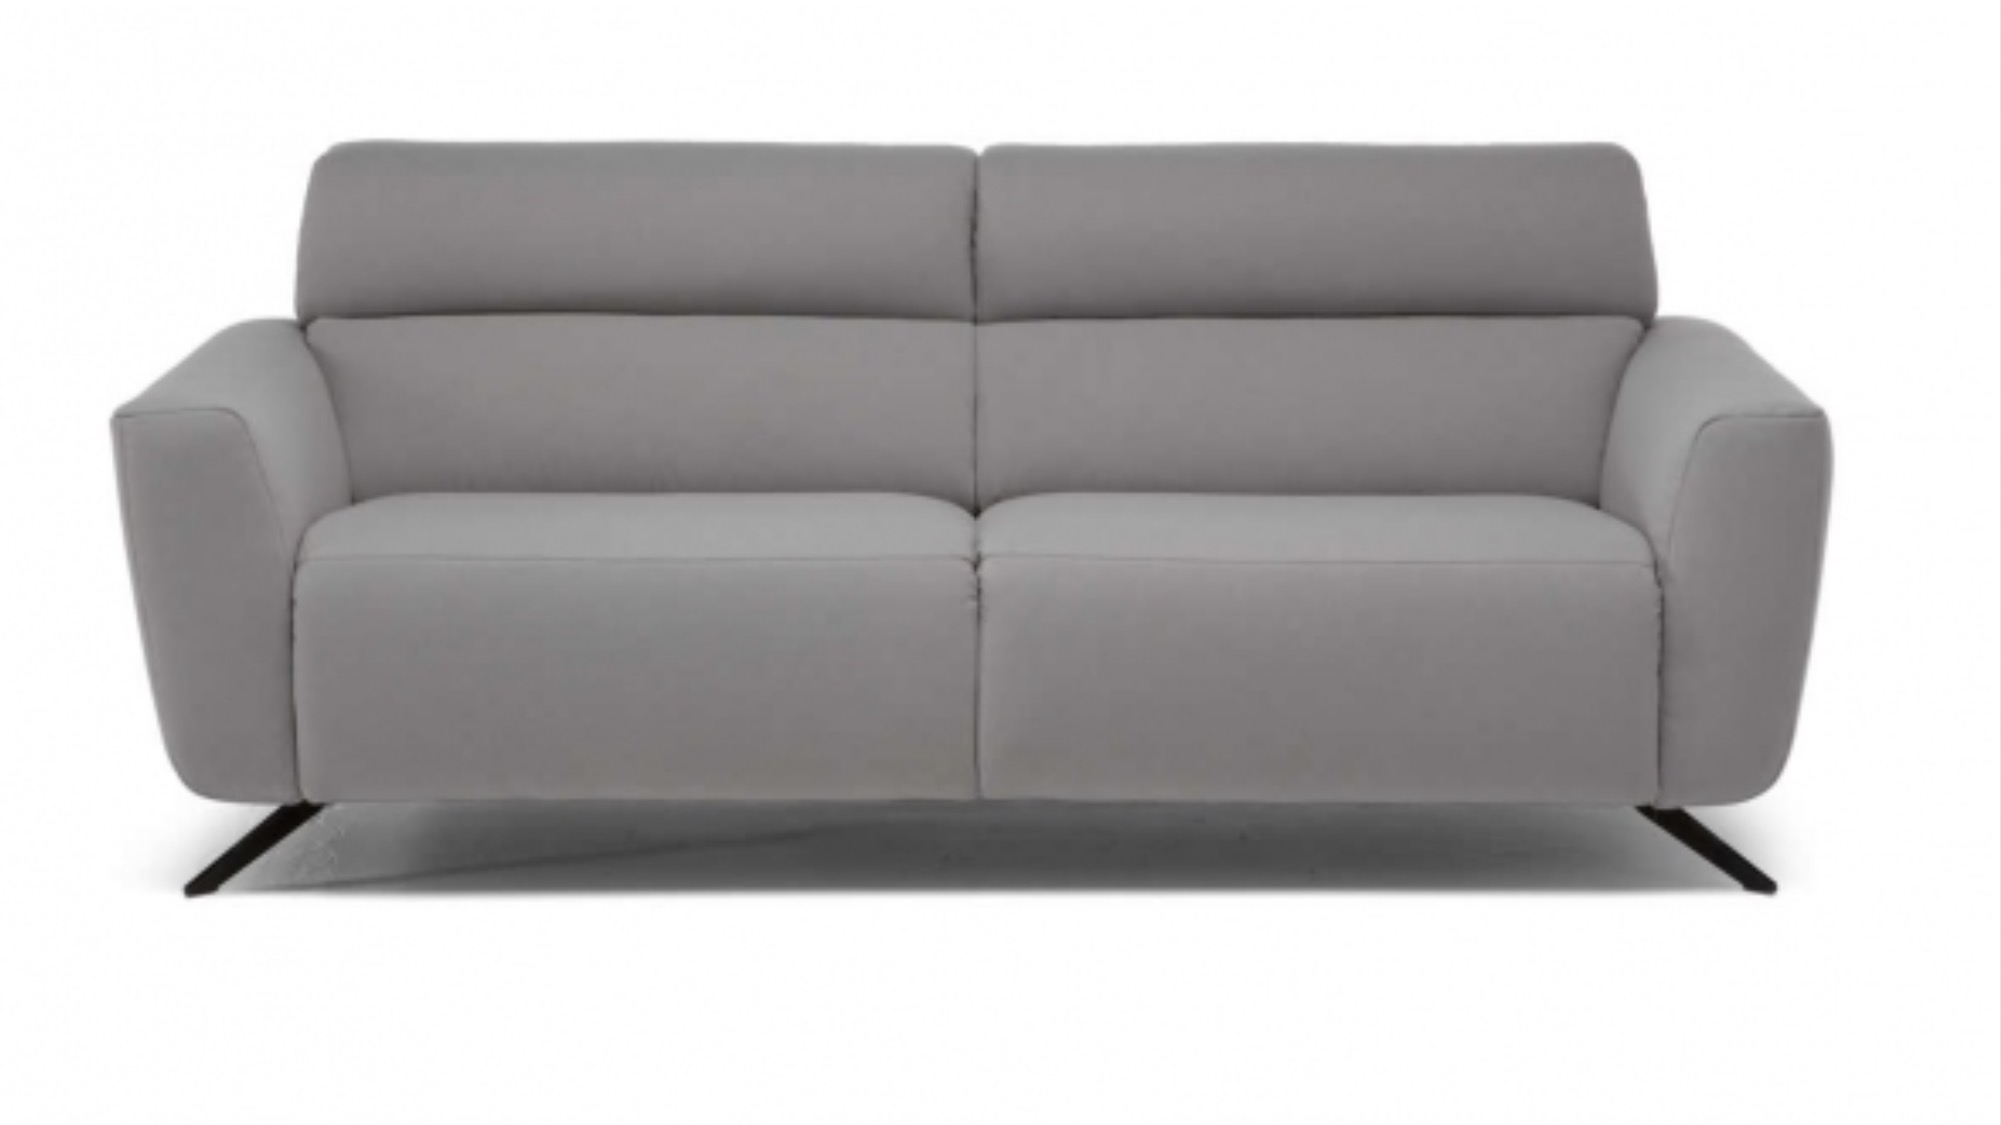 Canapé D'angle Natuzzi A Look At New Icaro Natuzzi C013 Furnimax News